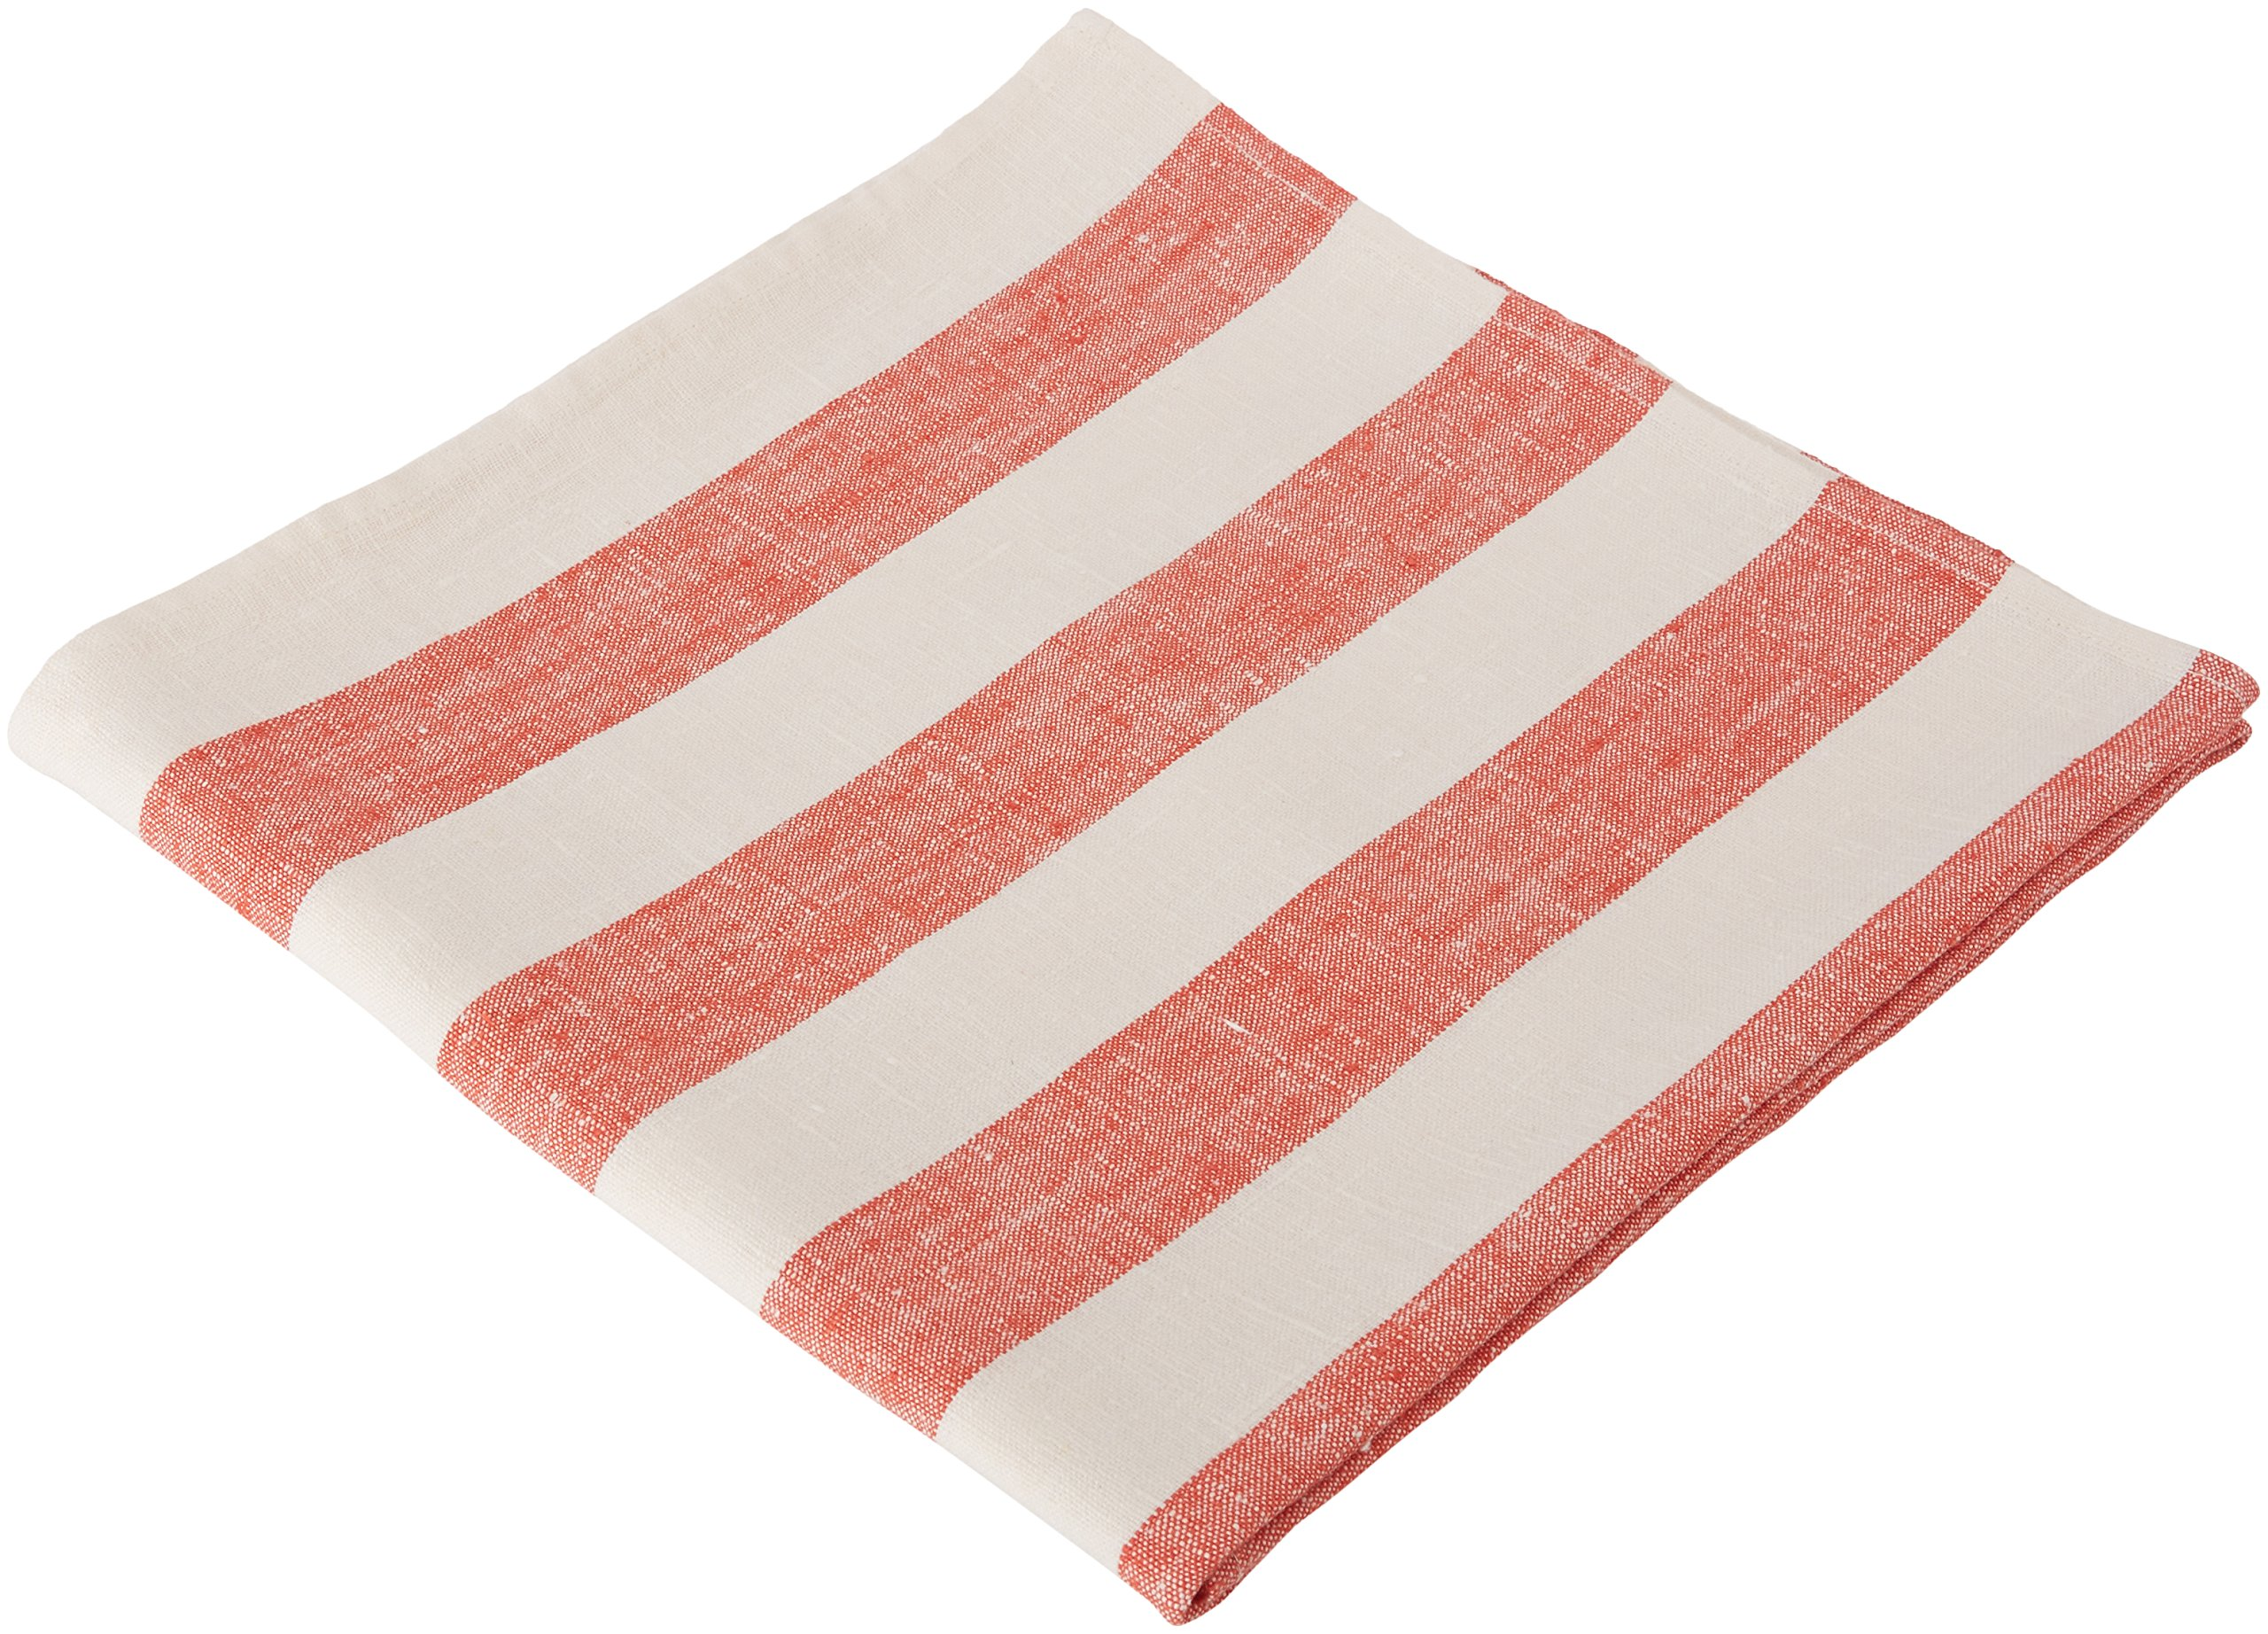 """LinenMe Philippe Bath Towel, 39"""" x 55"""", Off Off White/Red - This classic linen towel of wide red stripes design would make a great addition to any bathroom. The towel is made from 100Percent linen of huckaback weaving. Plain seam around, prewashed for extra softness, special loop for convenient hanging Bath towel has a loop, size: 39X 55, color: red, also available 8 colors, machine washable Produced in Europe from 100Percent linen - bathroom-linens, bathroom, bath-towels - 91yEfZDUjeL -"""